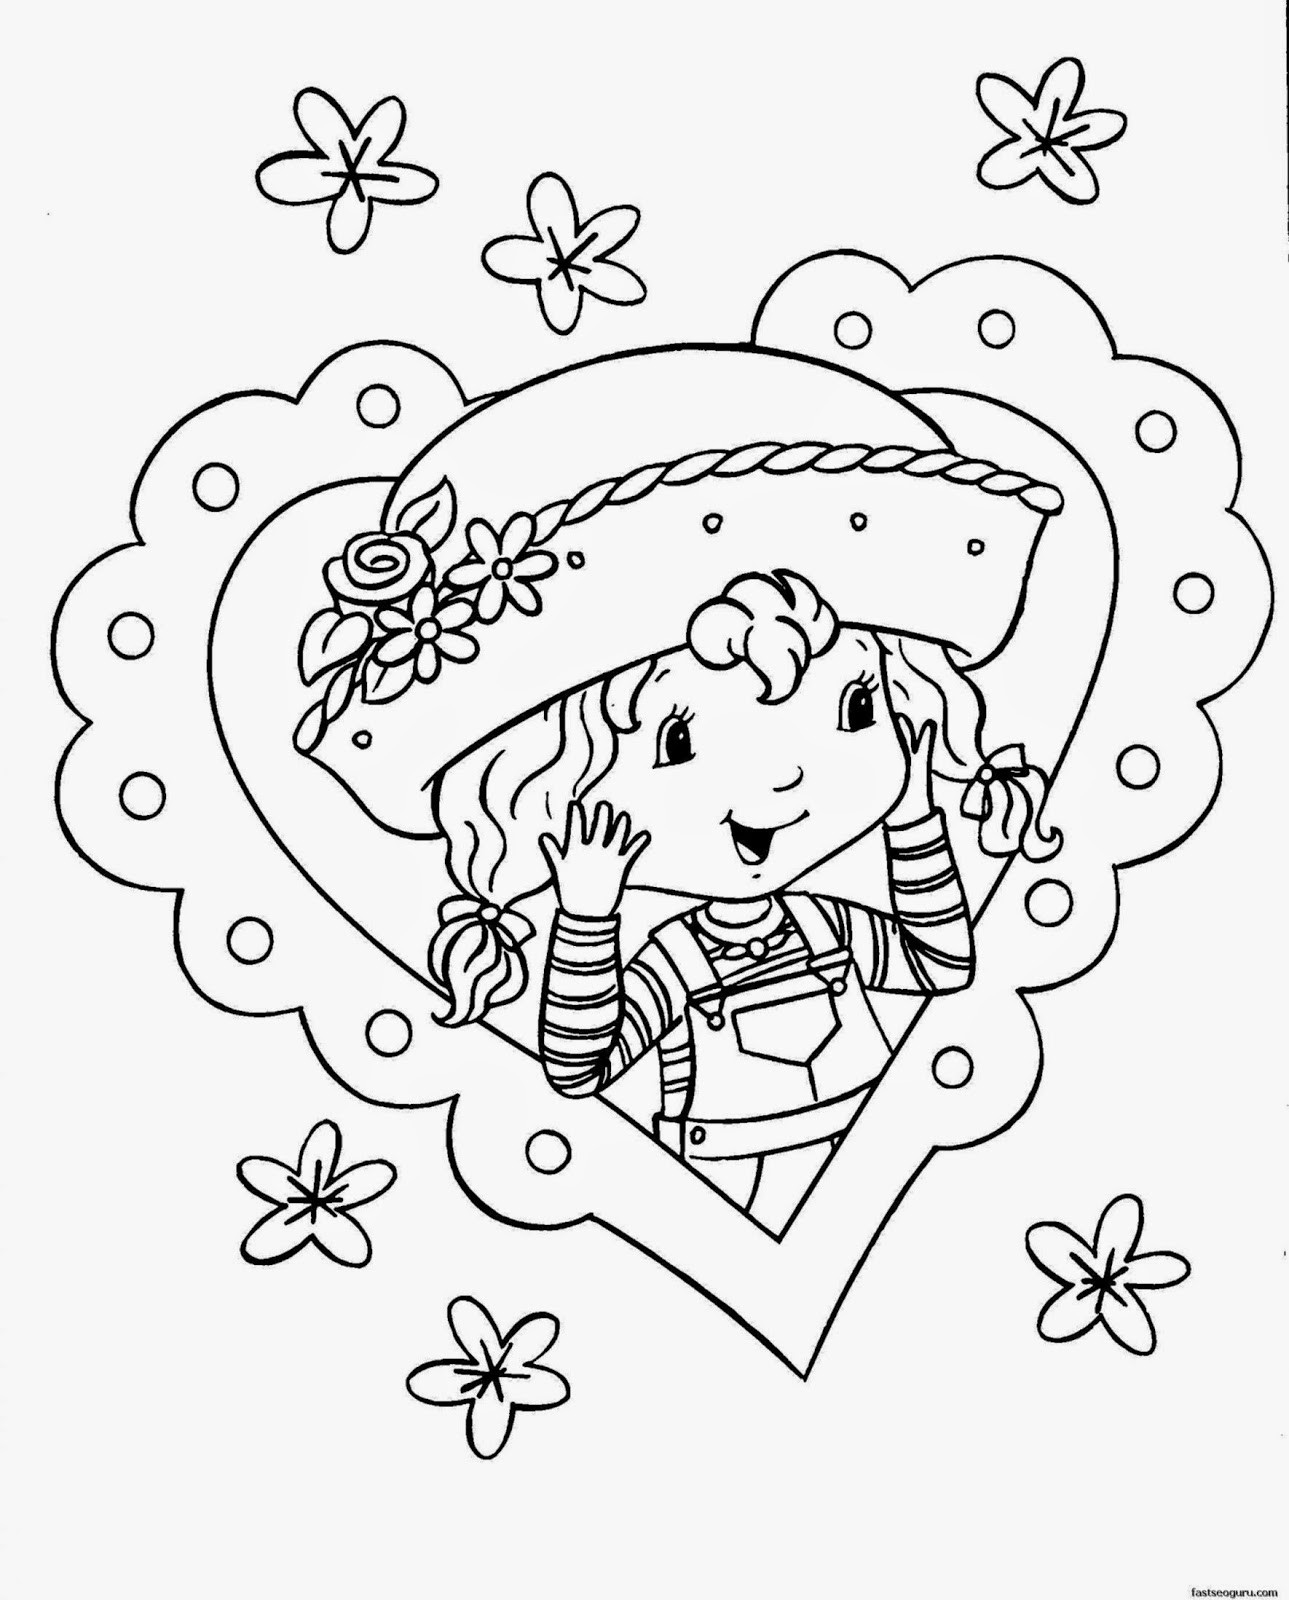 Free Printable Coloring Sheets For Girls  Printable Coloring Pages For Girls